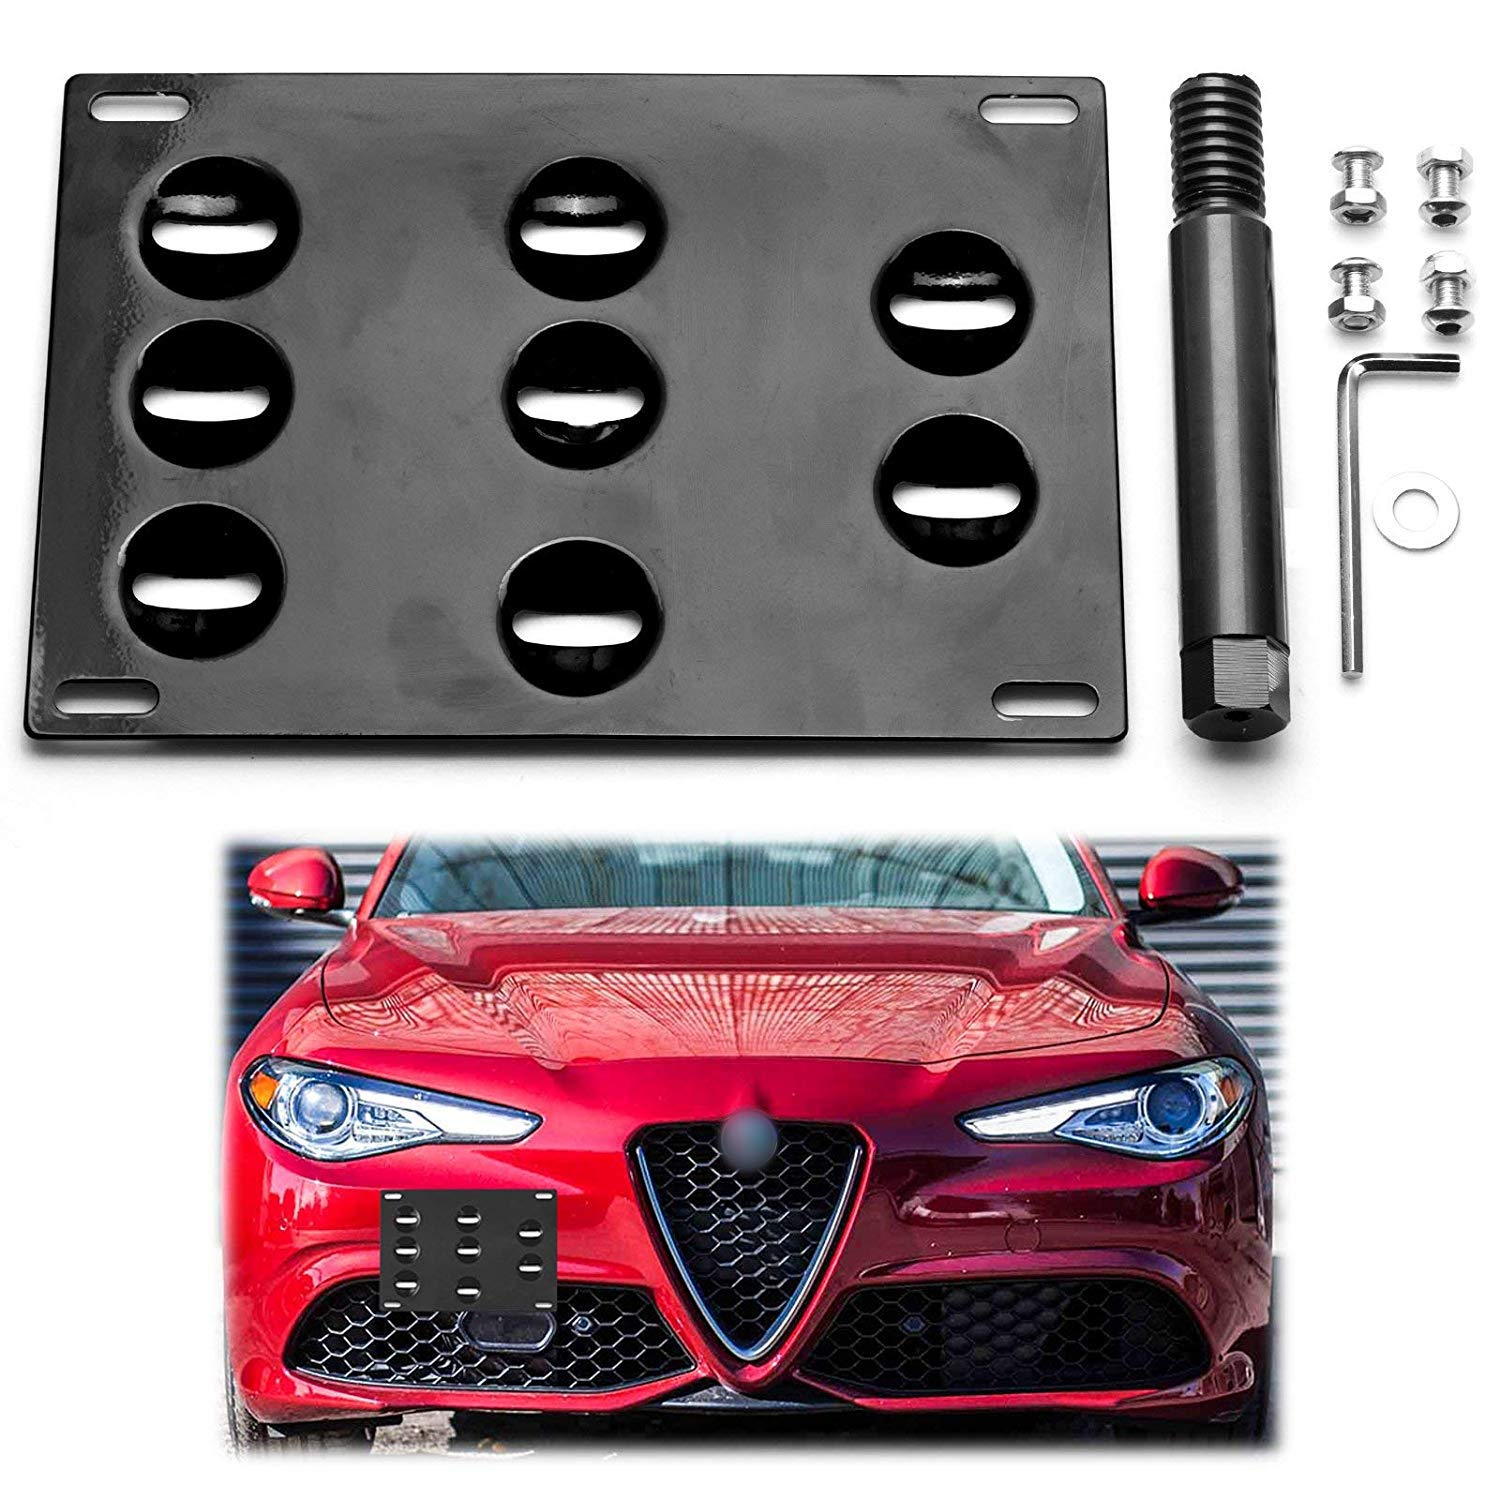 Xotic Tech for Alfa Romeo Giulia 2017+ Black Front Bumper Tow Hook License Plate - No Drill Mounting Bracket Adapter Kit by x xotic tech